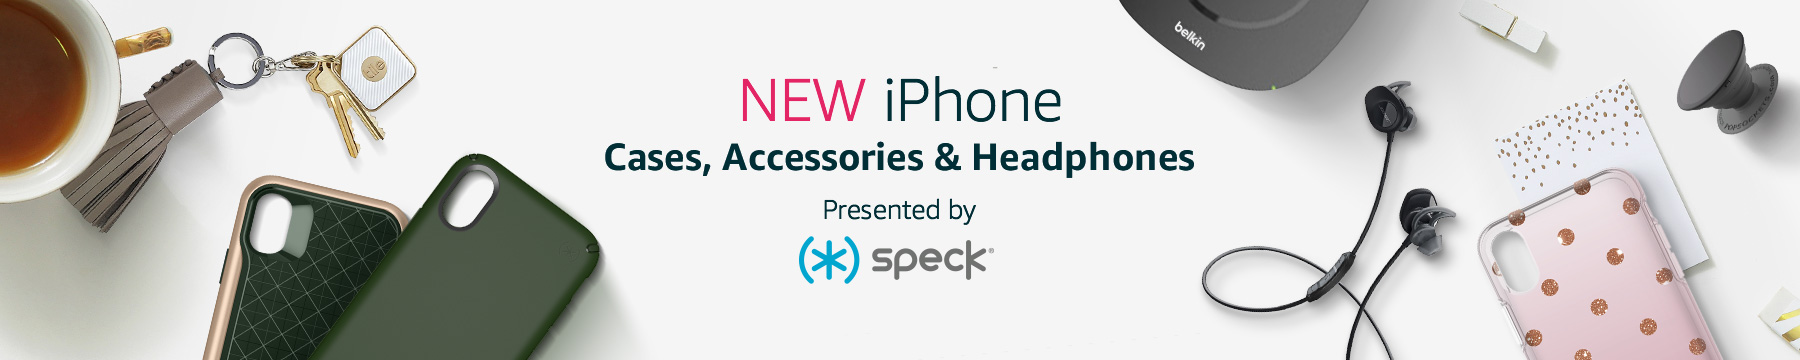 Speck_iPhone